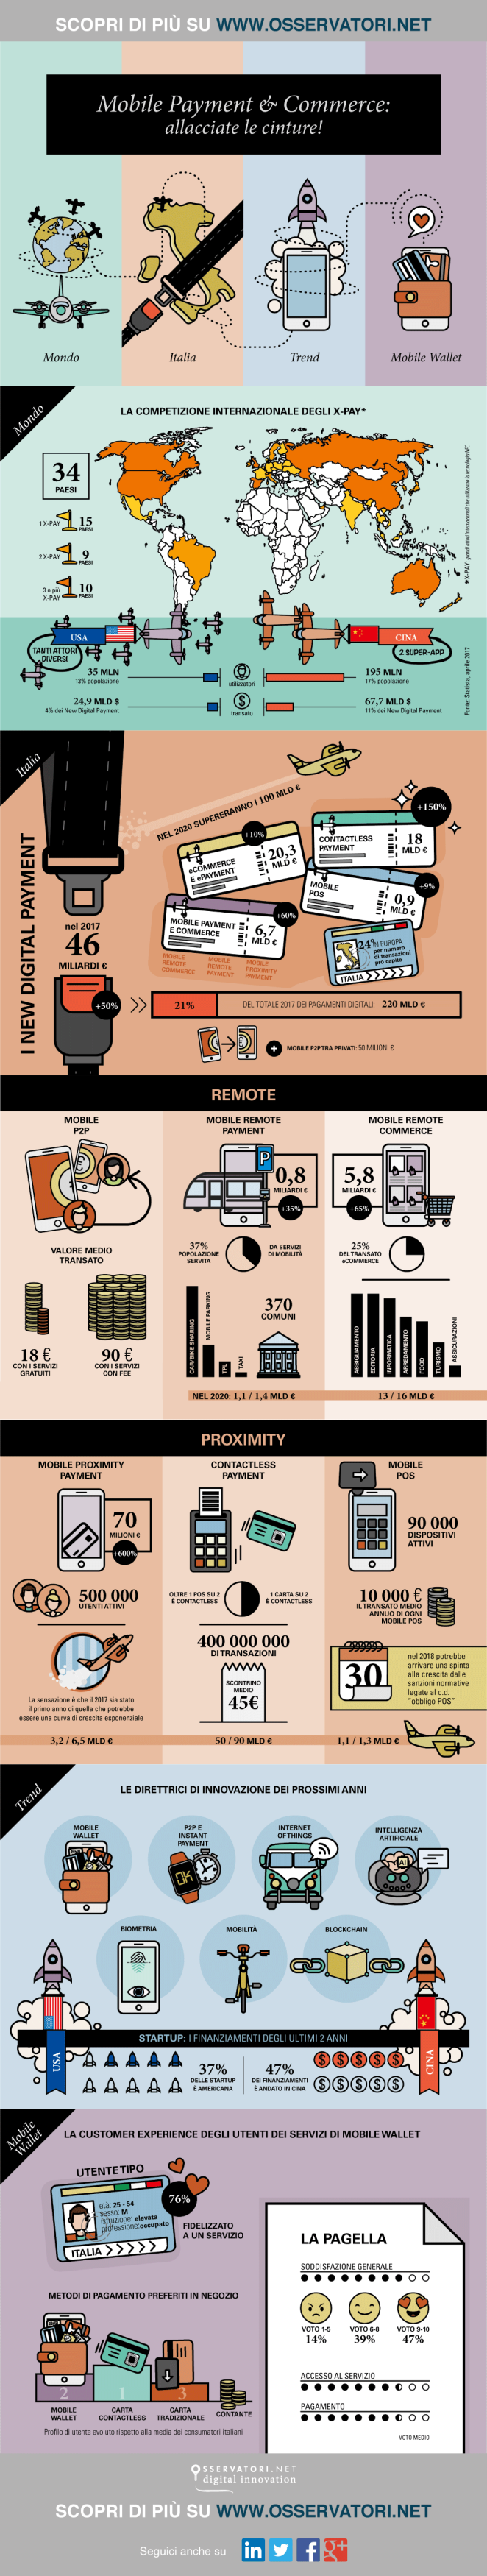 Infografica Osservatorio Mobile Payment 2018